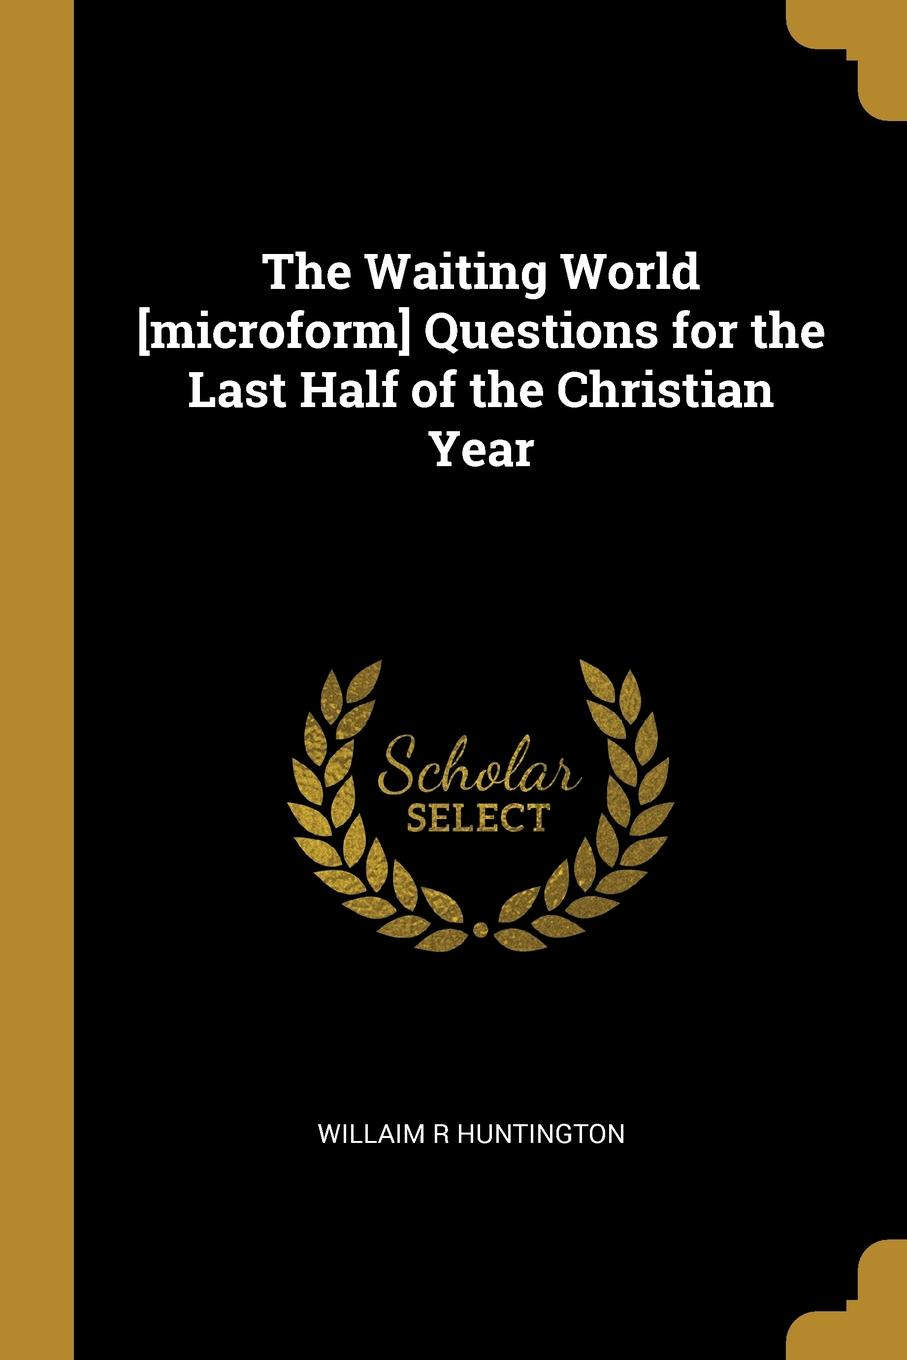 Willaim R Huntington The Waiting World .microform. Questions for the Last Half of the Christian Year